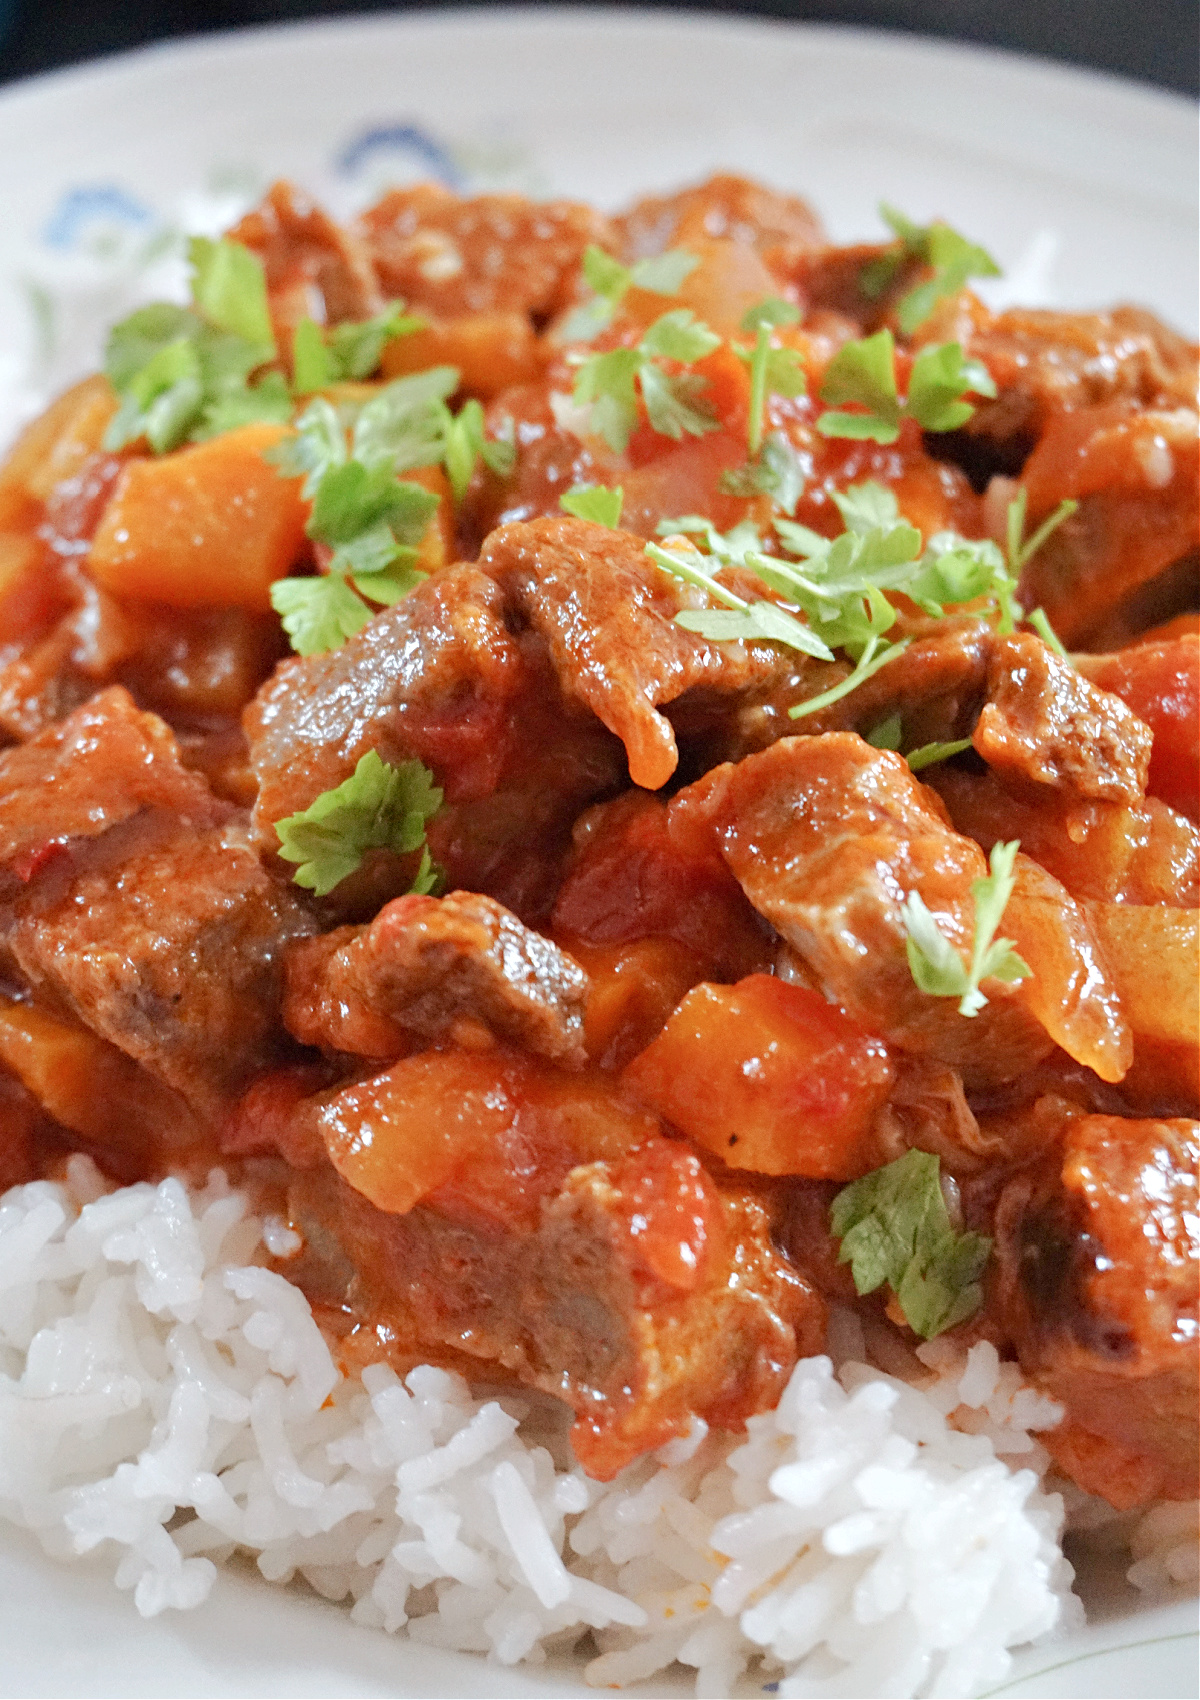 Close-up shot of beef chilli over a bed of rice